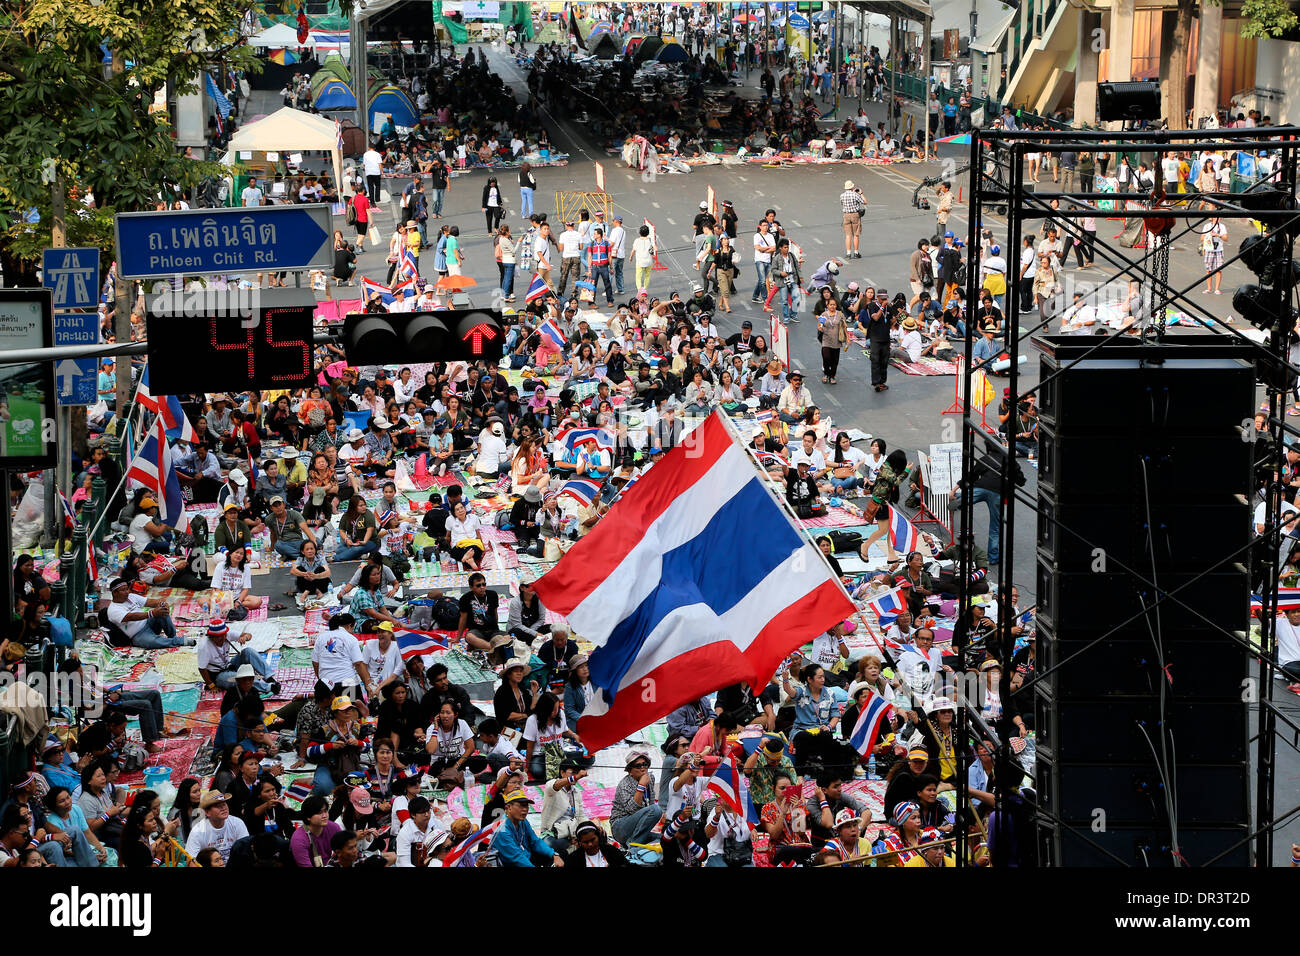 Bangkok, Thailand. 19 Jan 2014. Location in these images is in the centre of Bangkok an area known as 'Ratchaprasong' opposite the huge Centralworld shopping mall & revered Erawan Shrine.  Normally filled with traffic it has been converted to campsite with great views and live entertainment. Tens of thousands of protesters have disrupted traffic at major intersections and marched on government offices in Thailand's large and hectic capital city this week. The protests, dubbed 'Bangkok Shutdown,' had begun Monday 13th January without serious incident.  The rallies are orchestrated by the Peo ©  - Stock Image